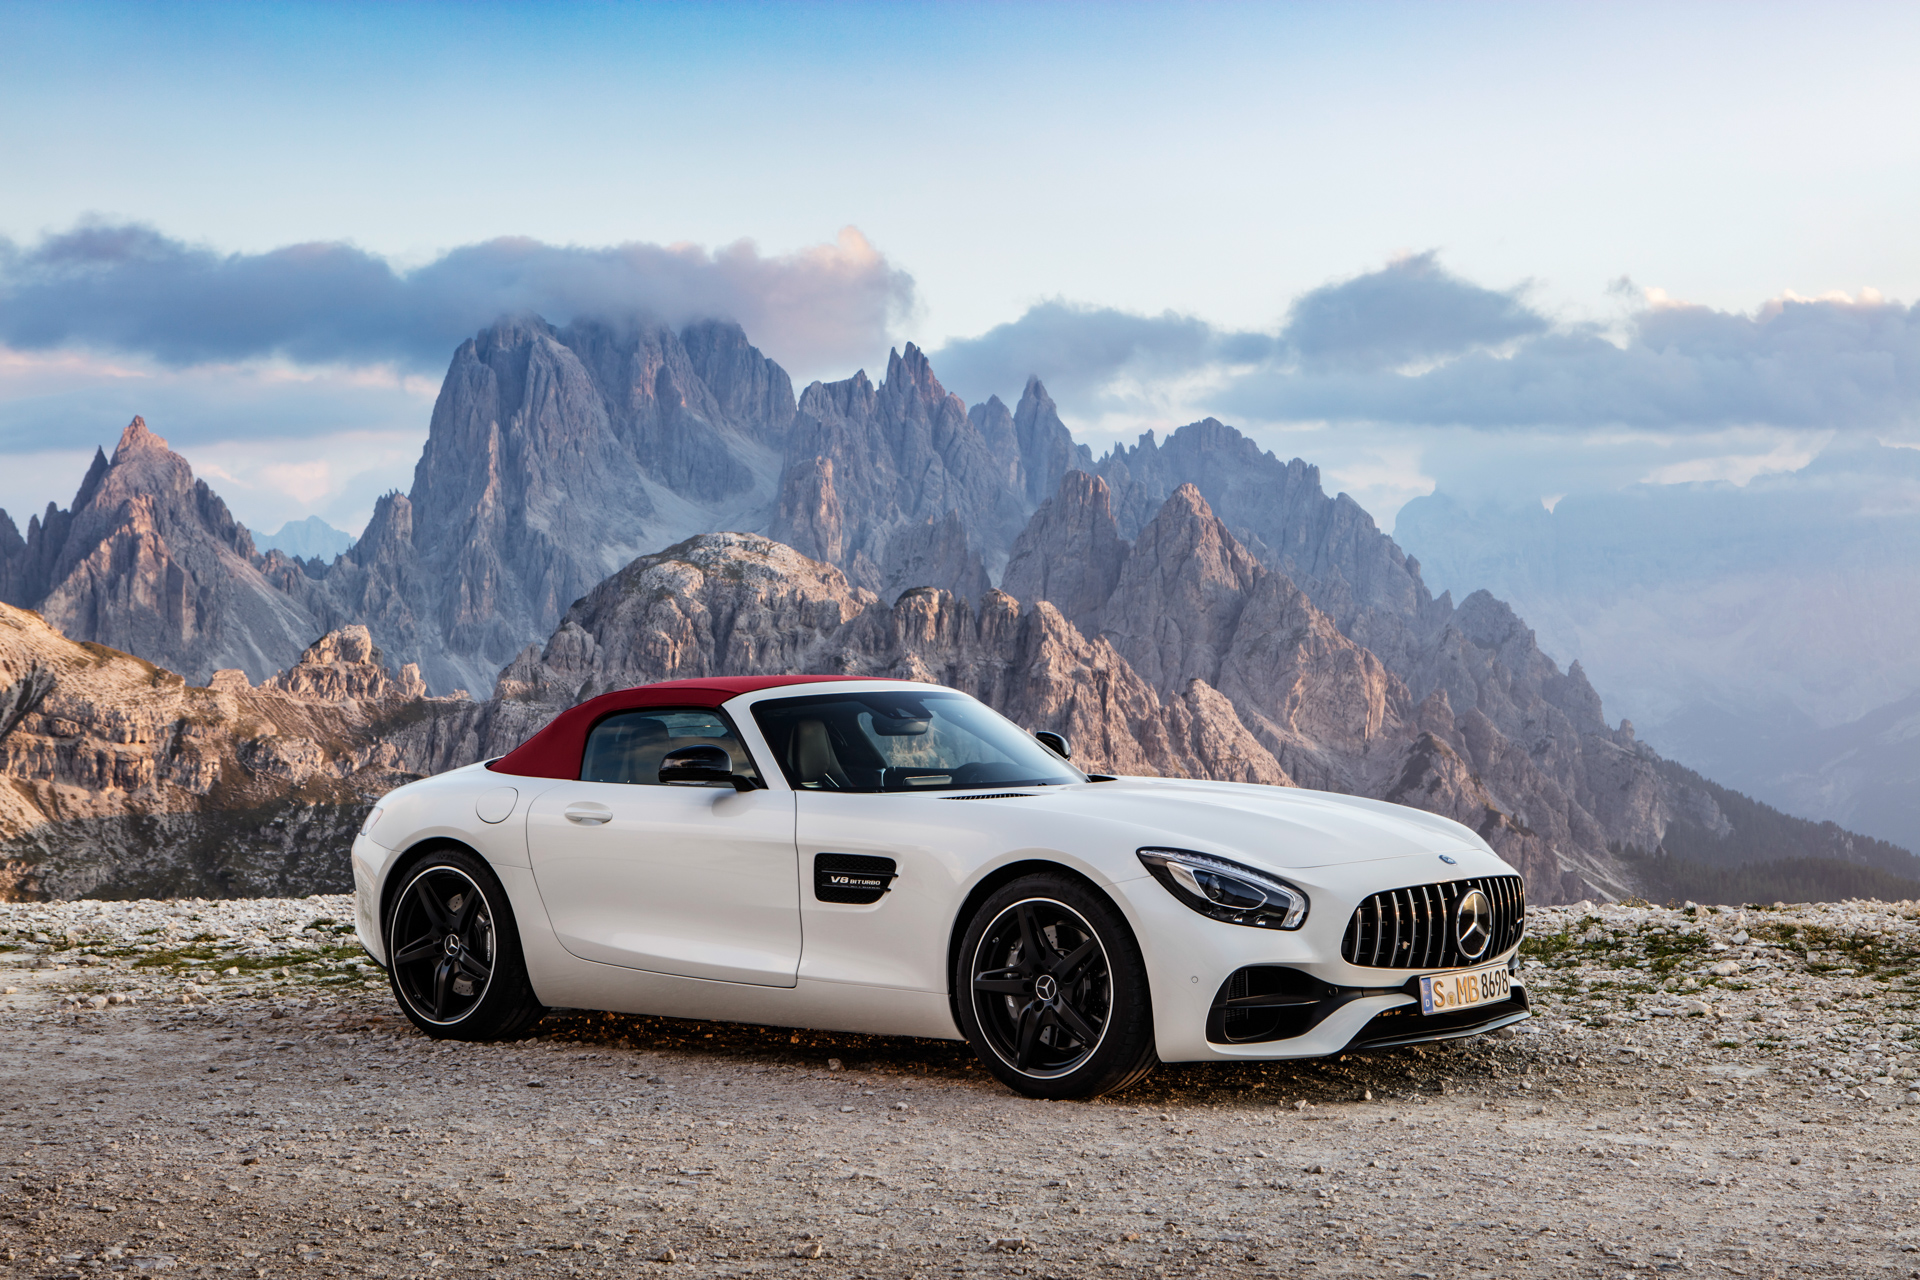 AMG GT Roadster (R 190), 2016; Exterieur: designo diamantweiß bright; Interieur: Leder Nappa Exklusiv schwarz/ red pepper ;Kraftstoffverbrauch kombiniert: 9,4 l/100 km, CO2-Emissionen kombiniert: 219 g/km AMG GT Roadster (R 190), 2016; exterior: designo diamond white bright; interior:Nappa leather exclusive black/red pepper; fuel consumption, combined: 9.4 l/100 km; combined CO2 emissions: 219 g/km